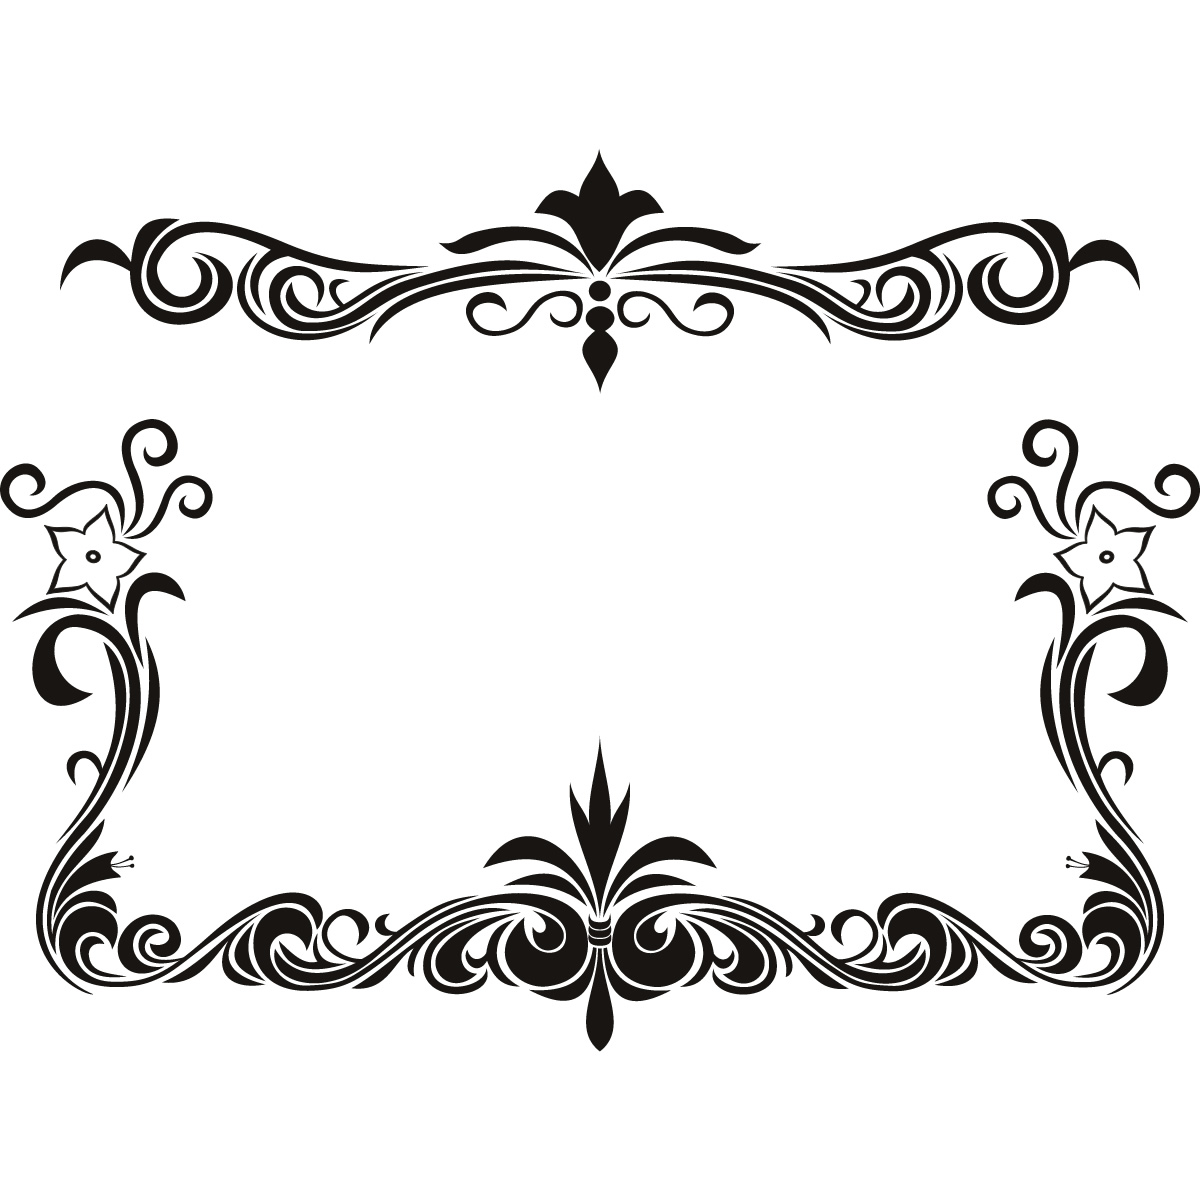 Line Art Border Designs : Flower line borders clipart best